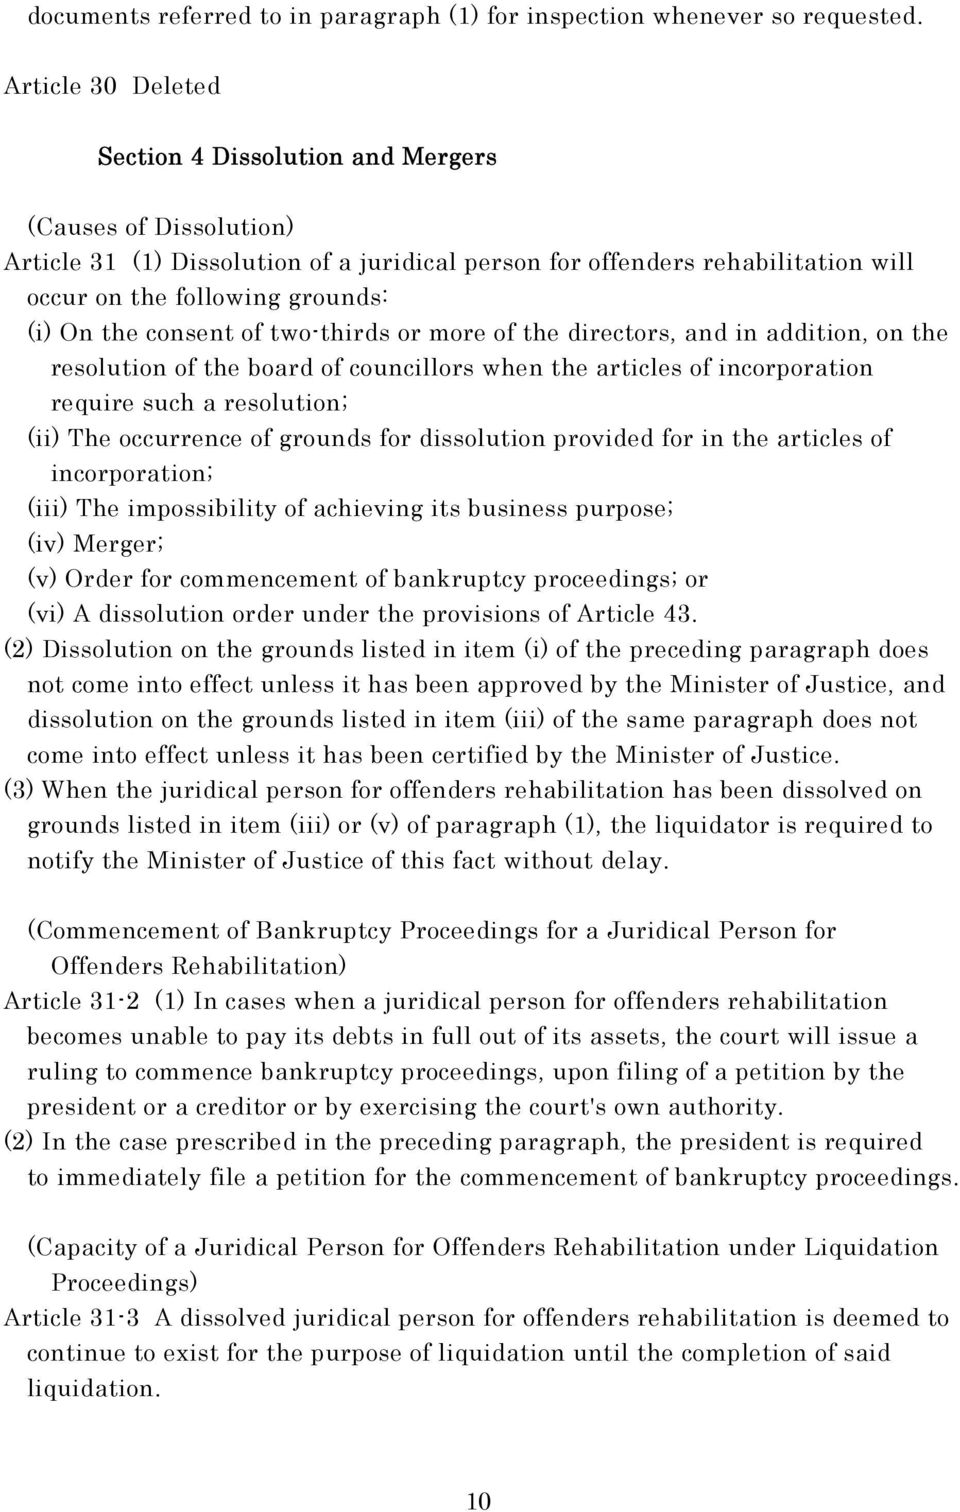 the consent of two-thirds or more of the directors, and in addition, on the resolution of the board of councillors when the articles of incorporation require such a resolution; (ii) The occurrence of